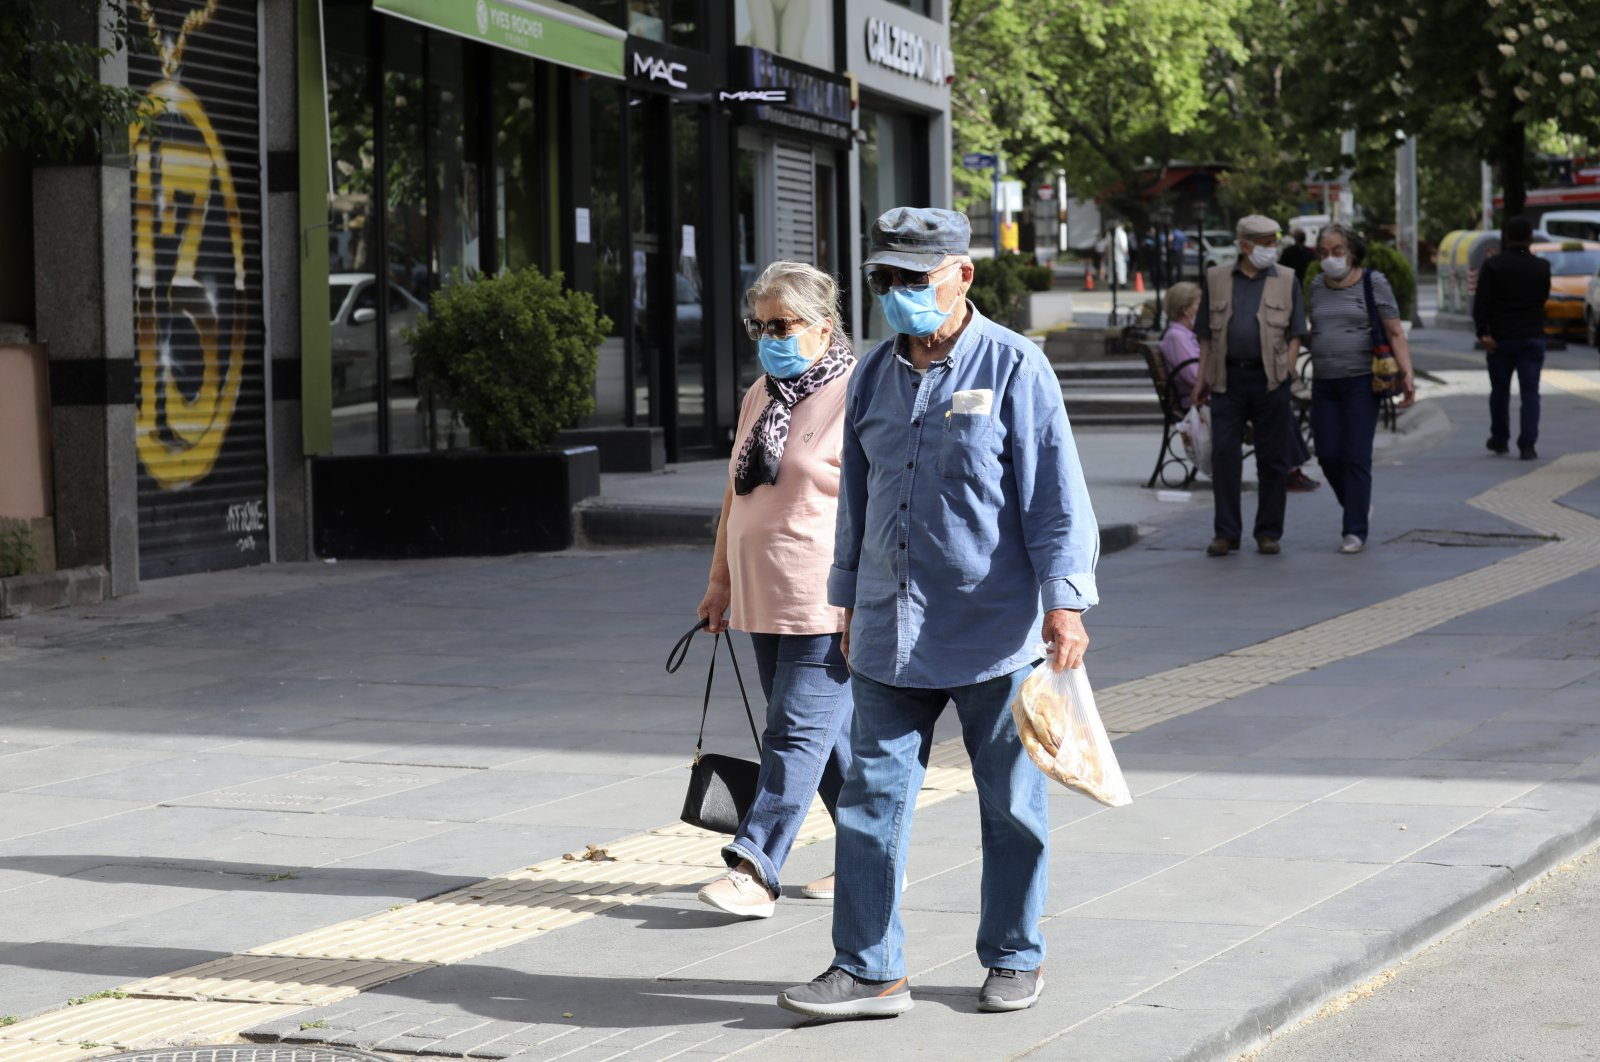 People wearing face masks for protection against coronavirus, walk in popular Tunali Hilmi Street during a four-day curfew declared by the government in an attempt to control the spread of coronavirus, in Ankara, Turkey, Sunday, May 17, 2020. (AP Photo)